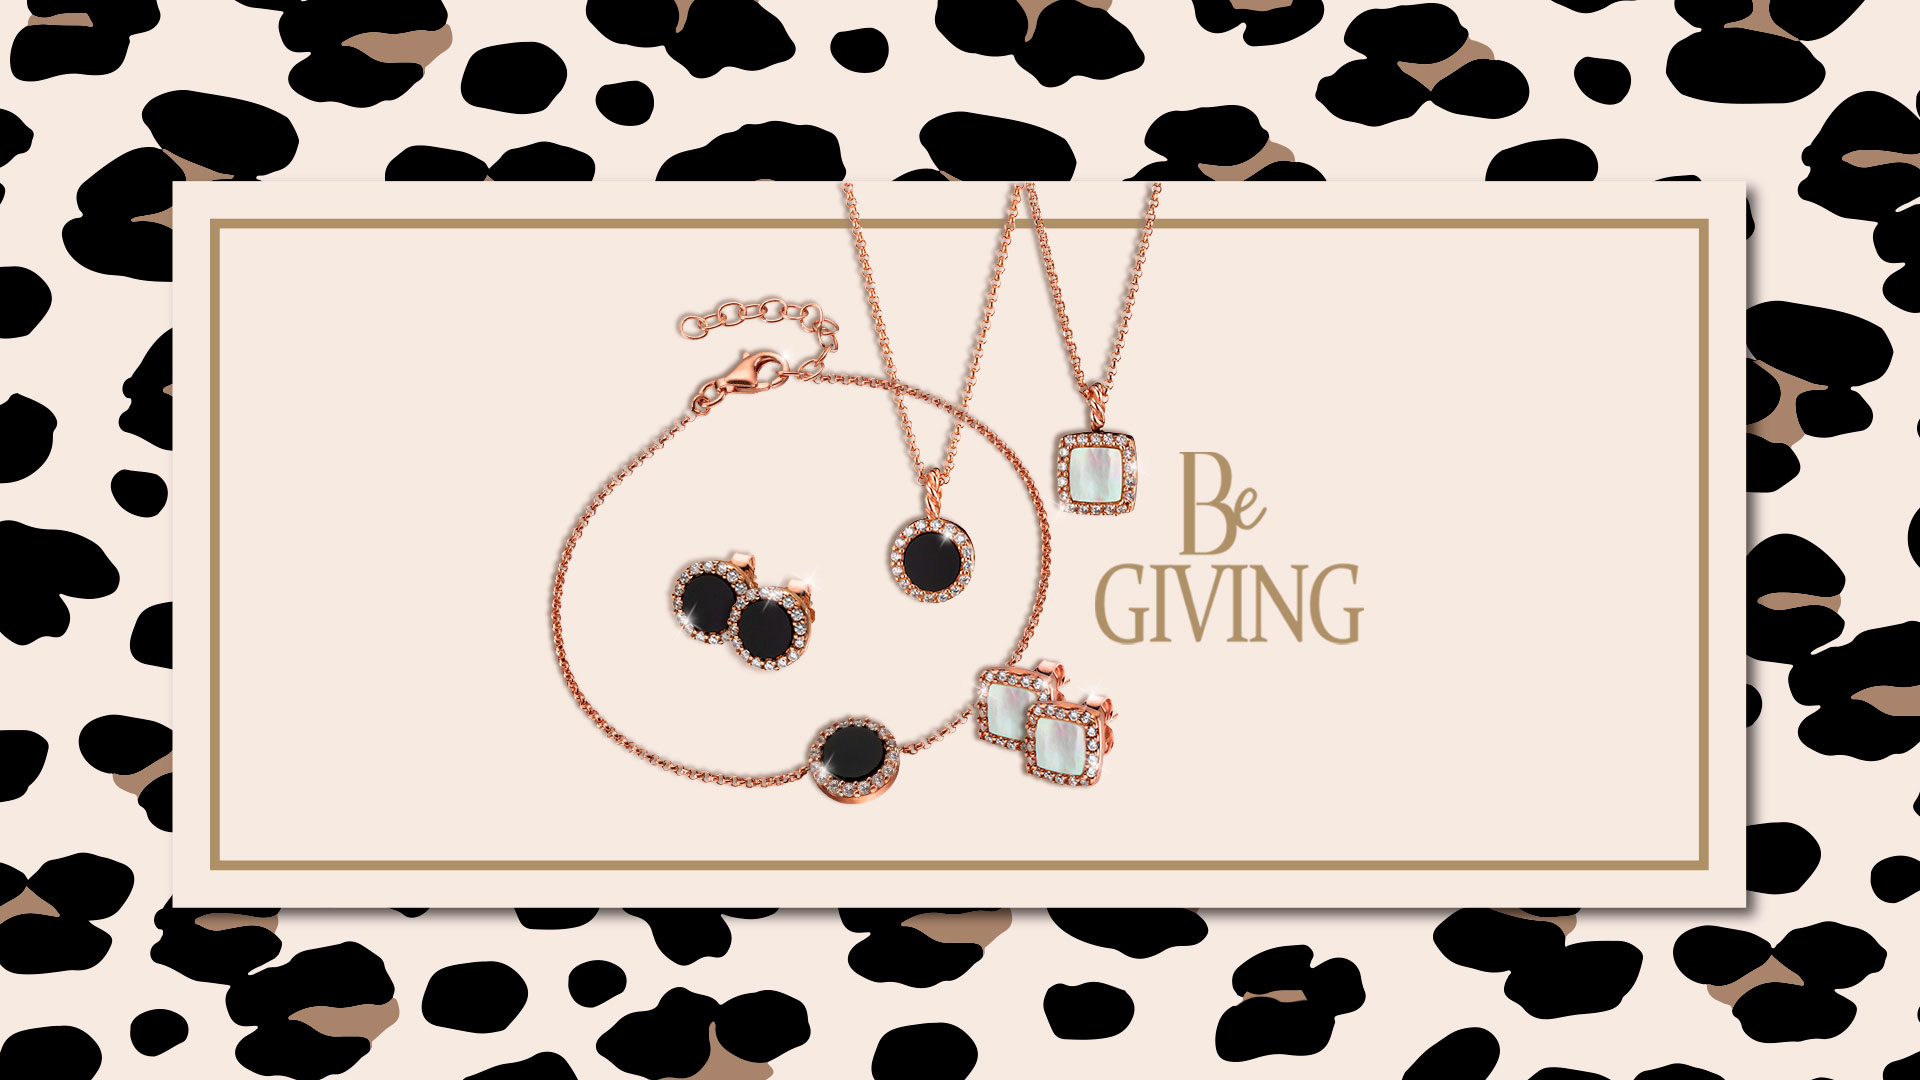 Aurora Gifting - Oxette